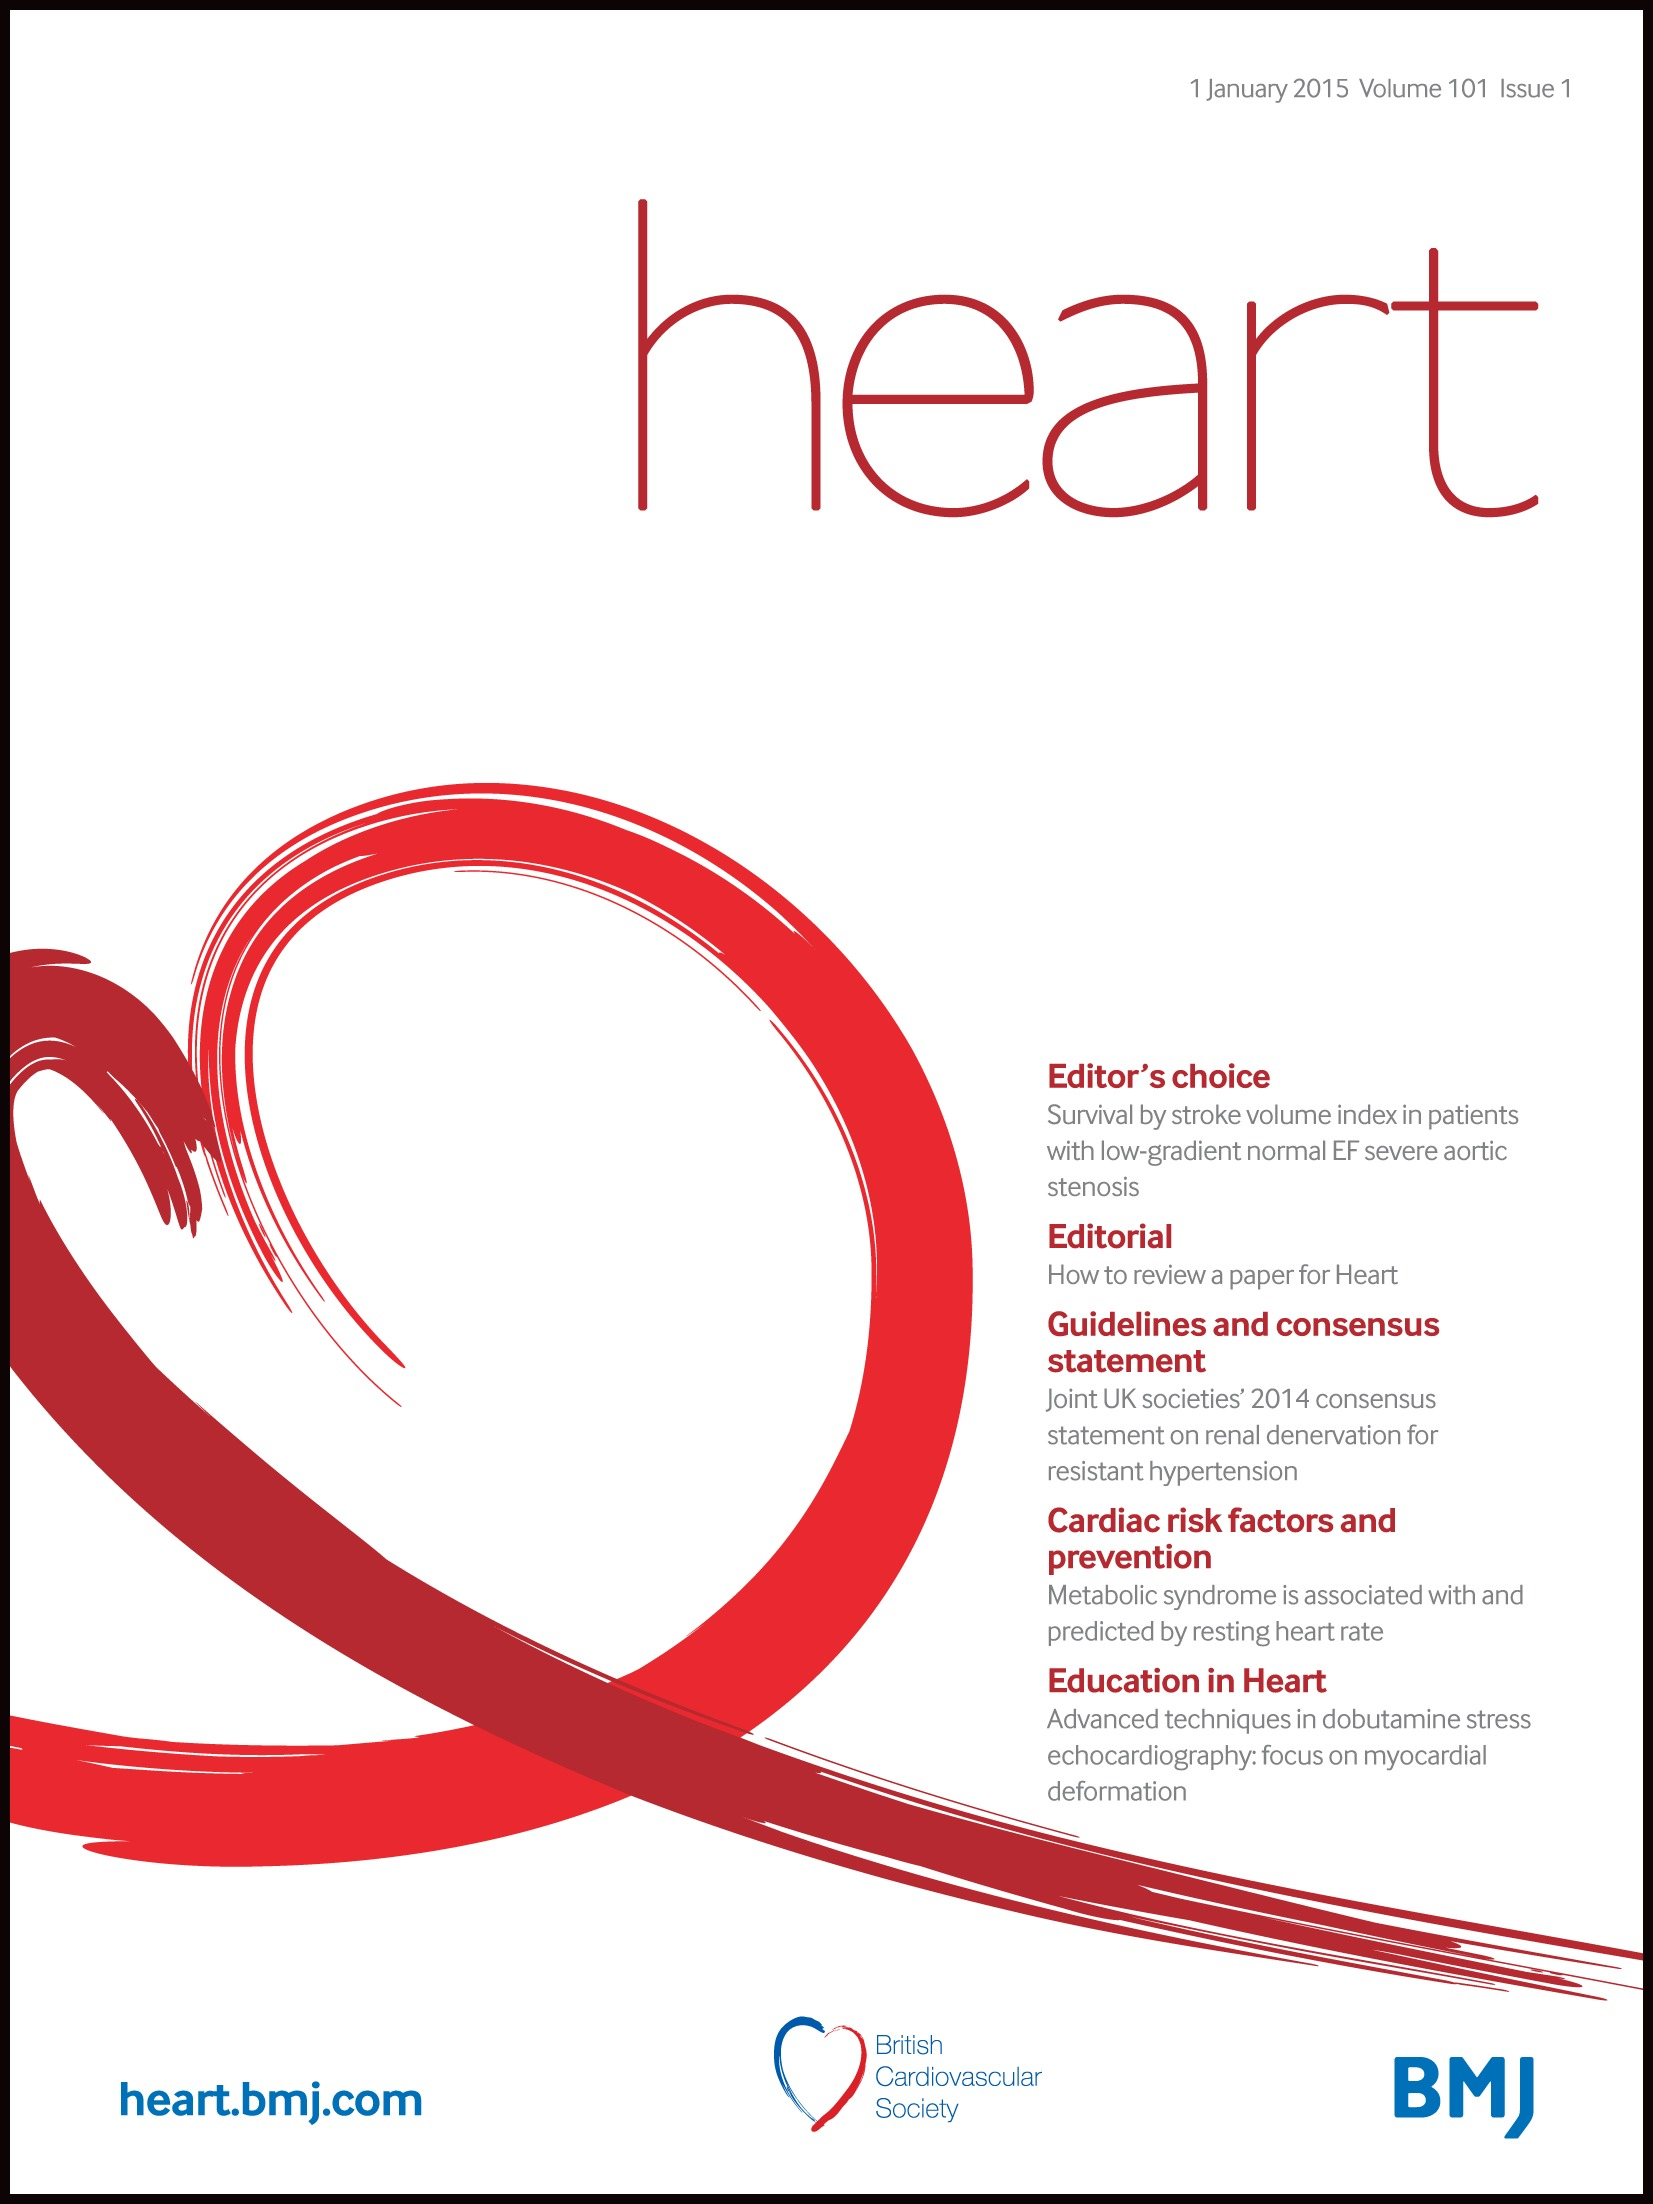 Metabolic syndrome is associated with and predicted by resting heart rate:  a cross-sectional and longitudinal study | Heart